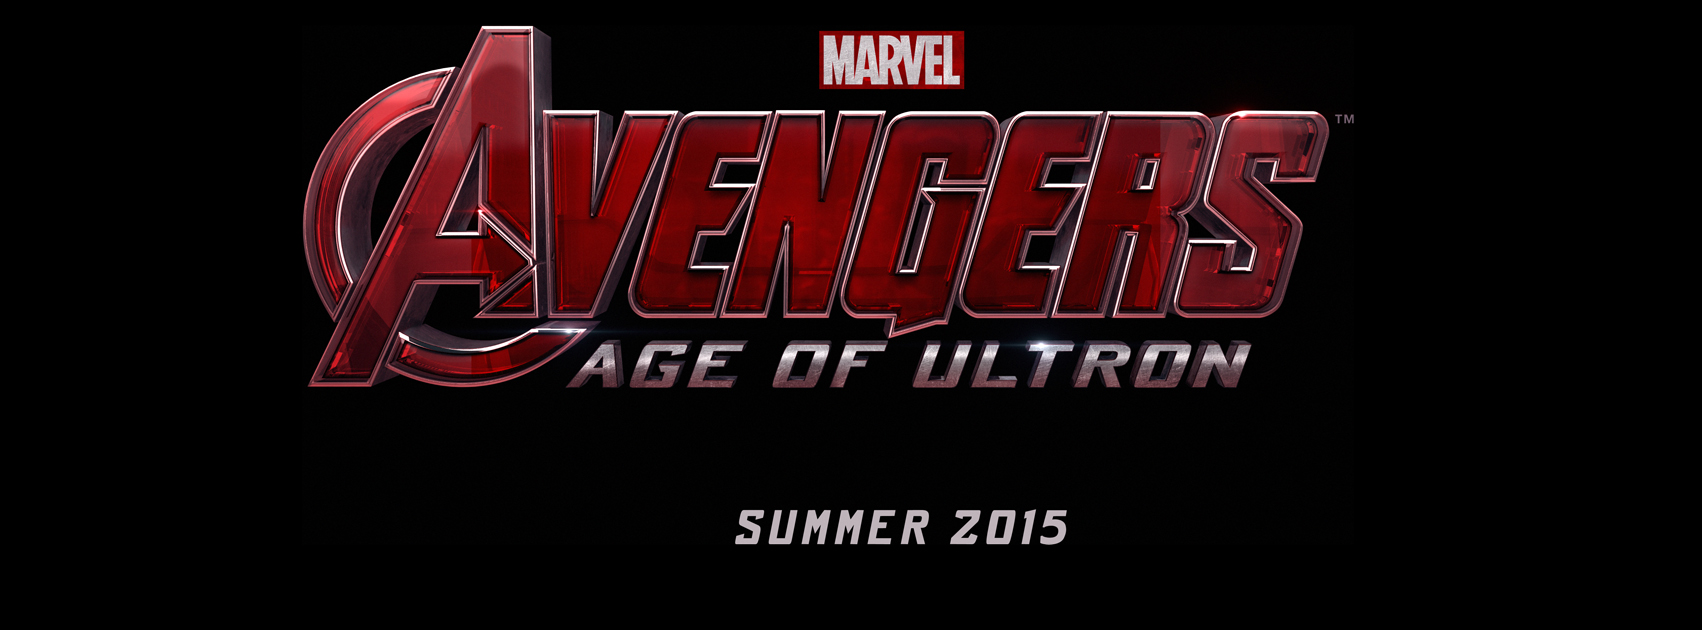 Release Dates for Avengers: